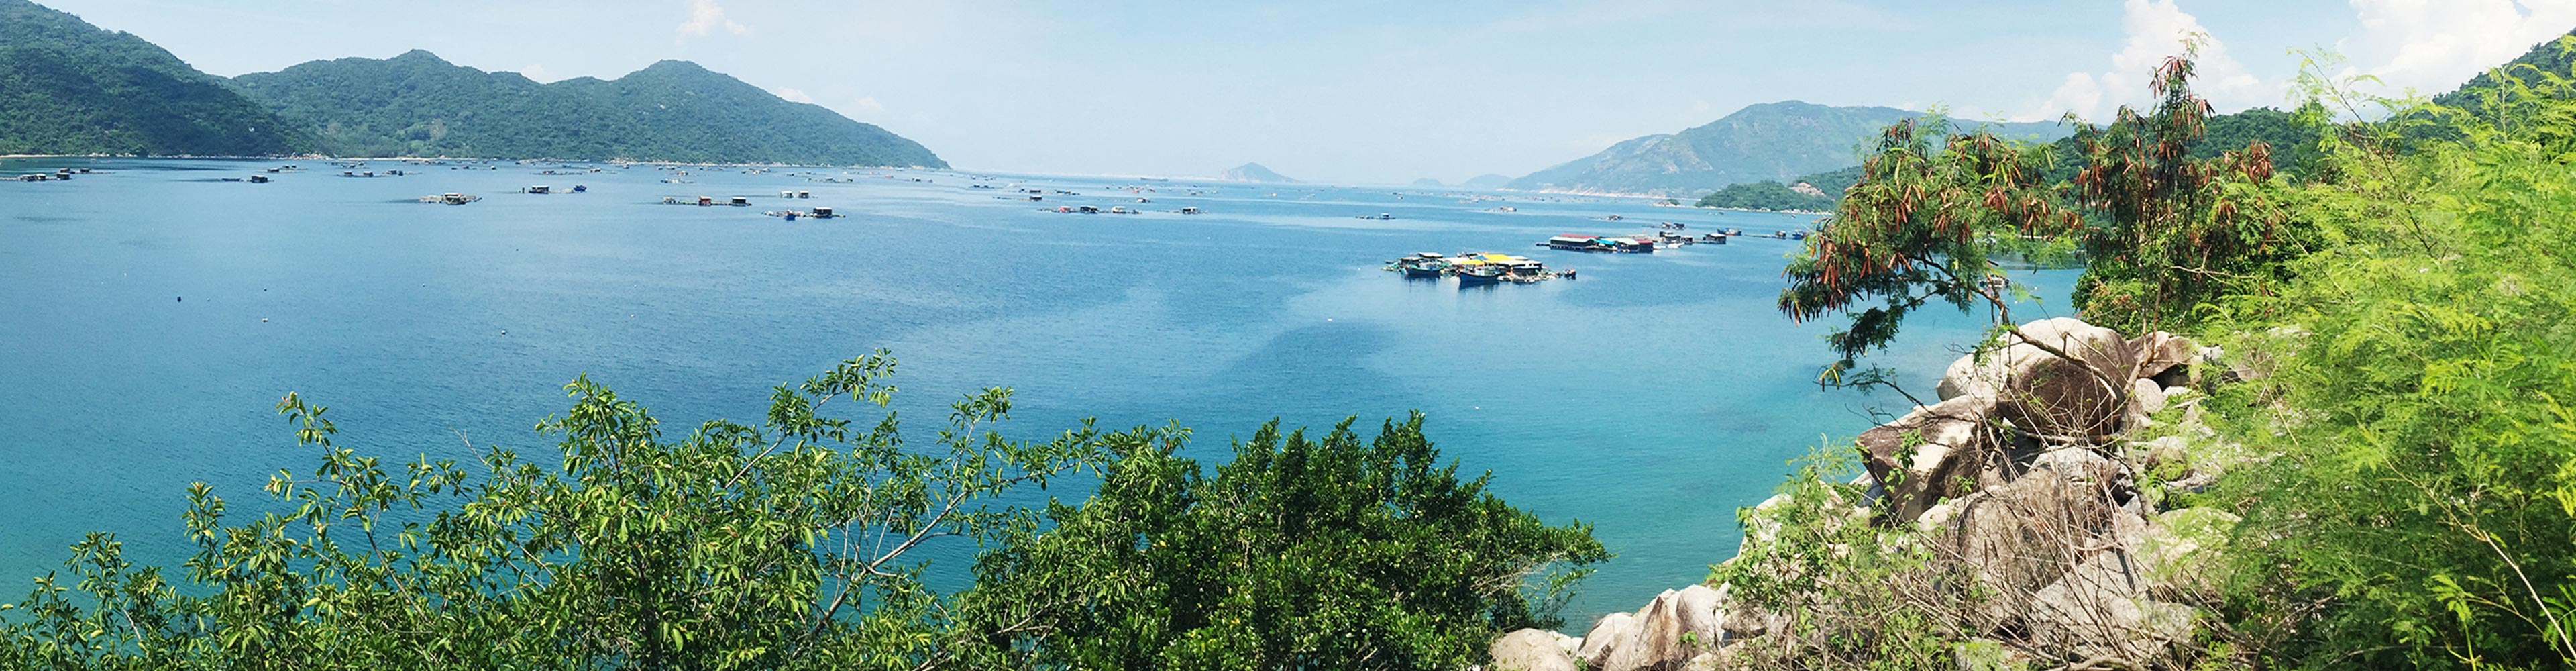 Cruising the Coast of Vietnam: North to South